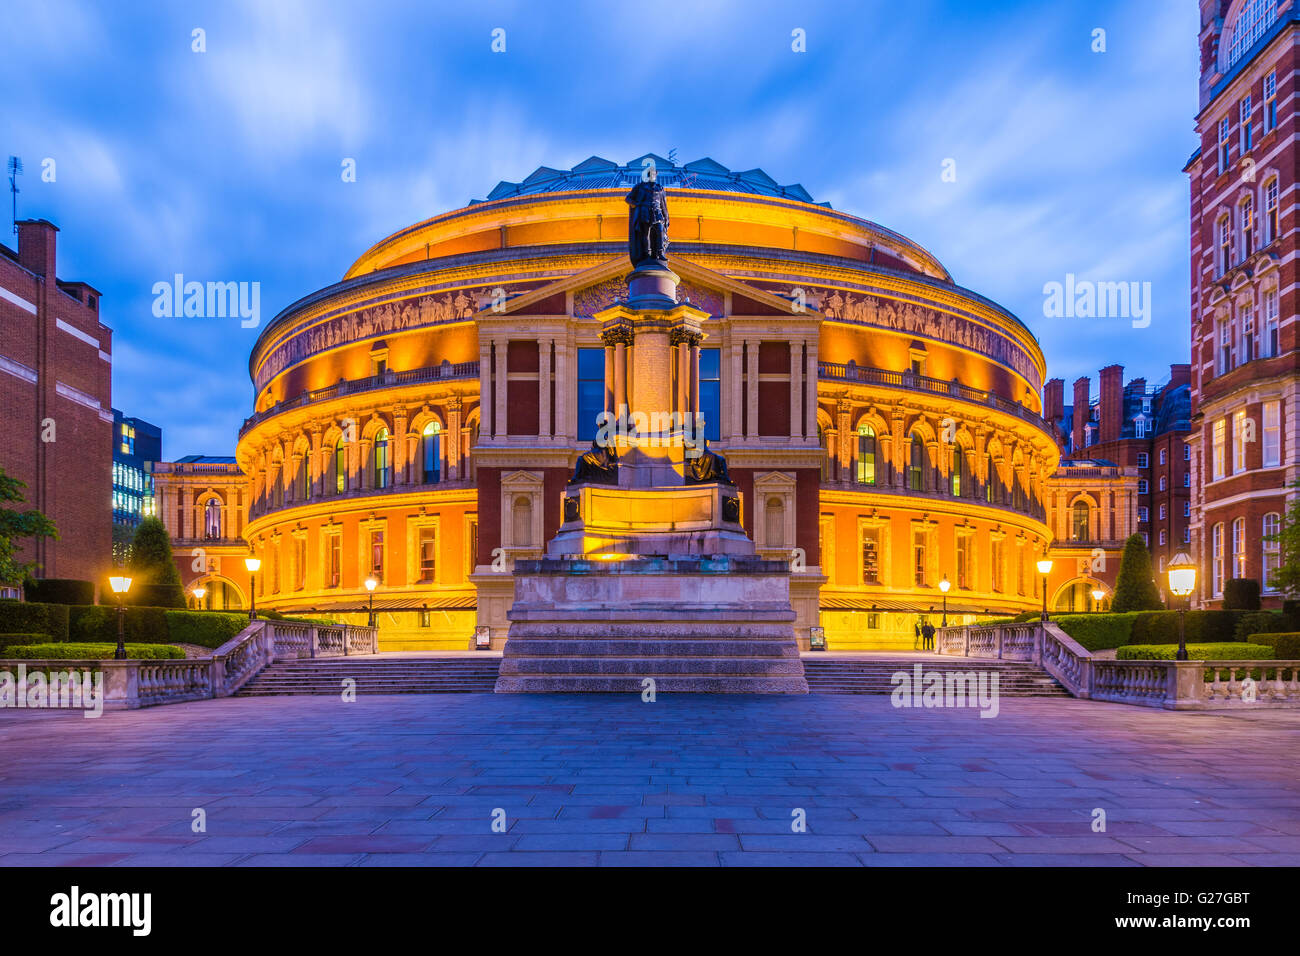 Beleuchtete Royal Albert Hall, London, England, UK in der Nacht Stockbild